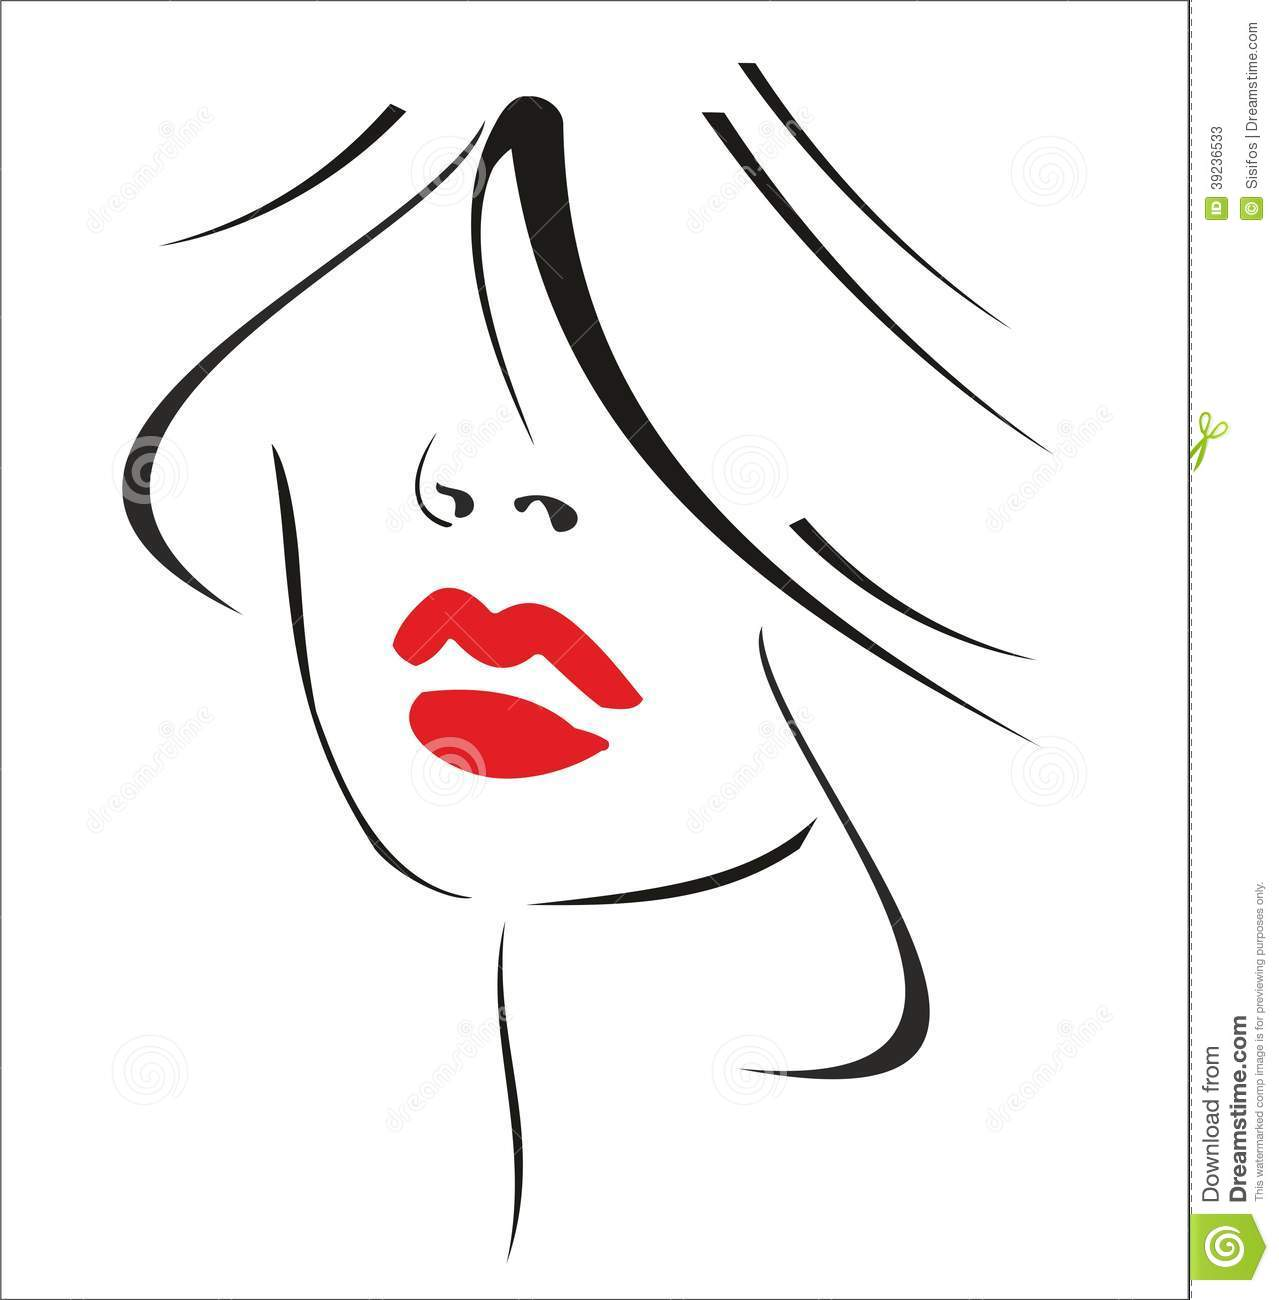 Music Tape Clipart likewise Fotos De Archivo Mujer Con El Pelo Negro Y Los Labios Rojos Image39236533 moreover Cute Cursive Font For Tattoo besides Outlines Of Elegant Girl With Ponytail Back View 54418 Vector Clipart also  on haircut